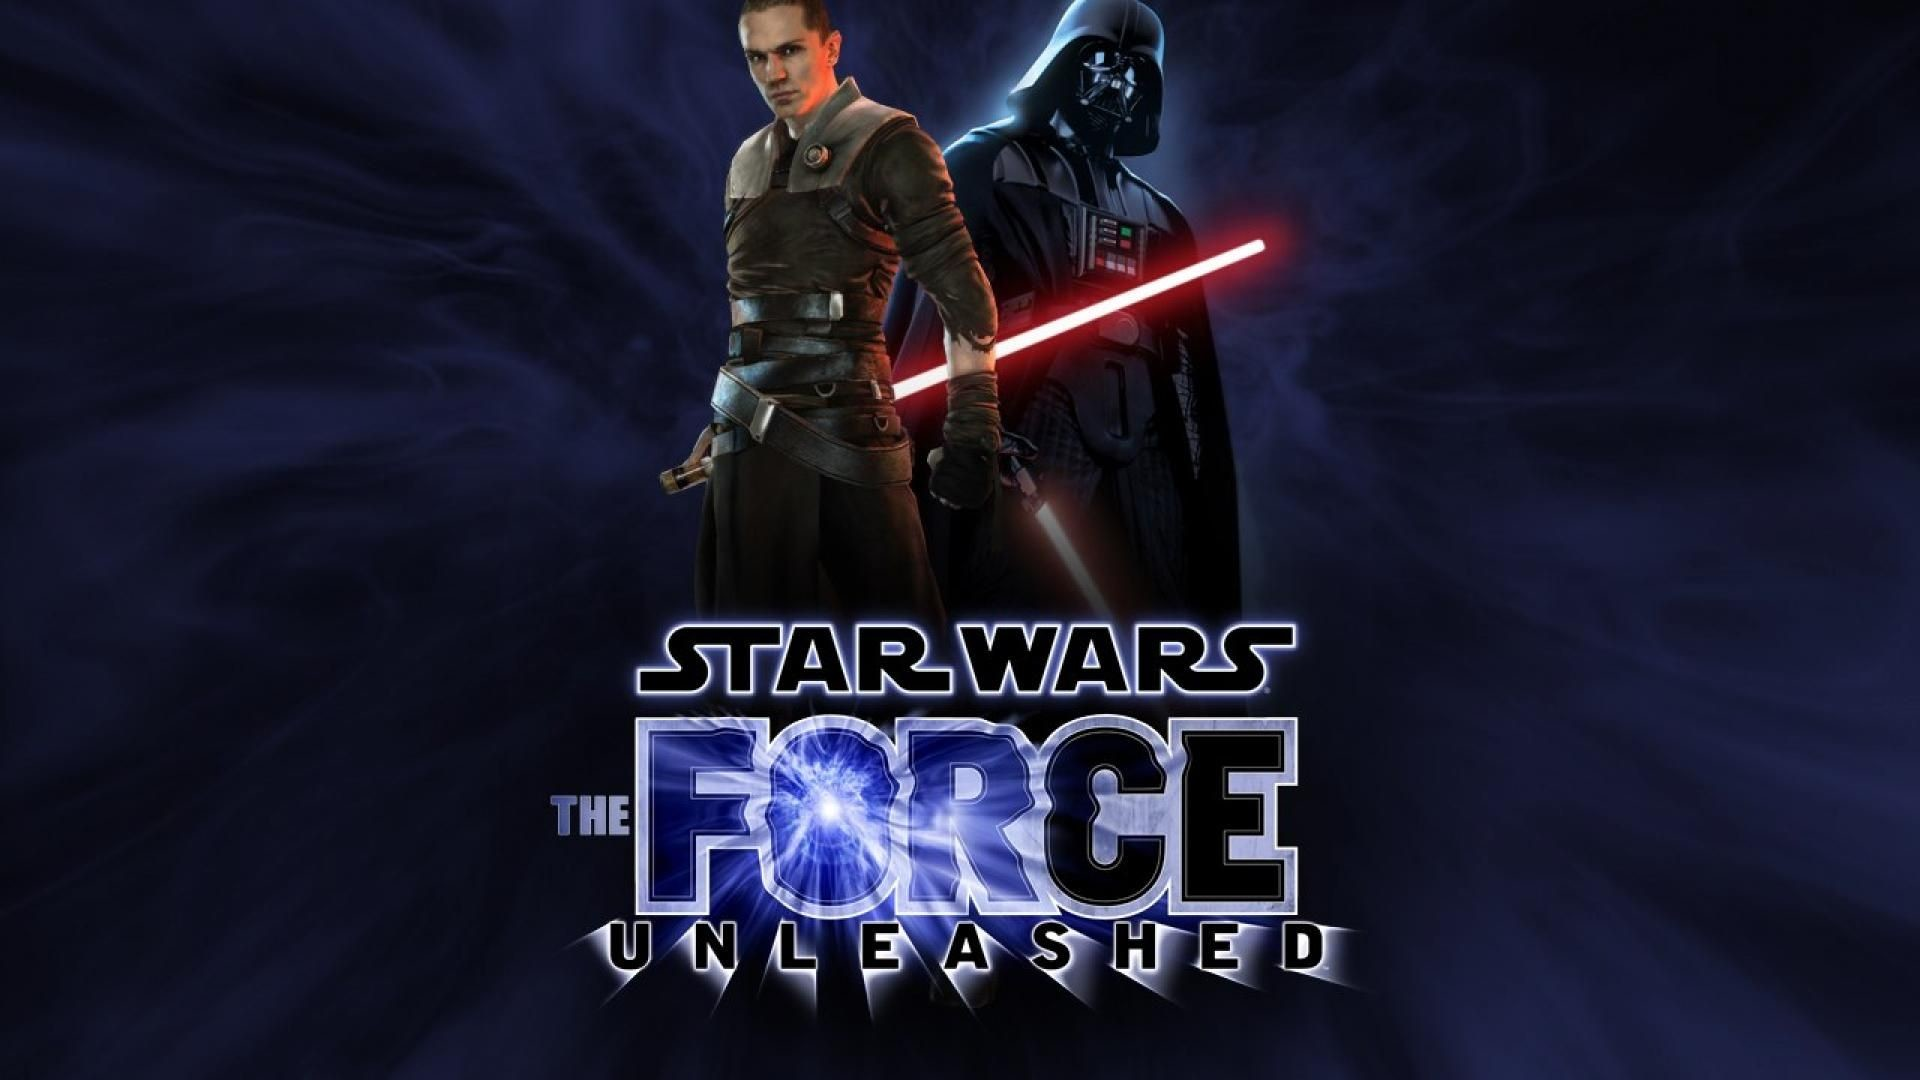 darth vader star wars the force unleashed games hd wallpaper . …